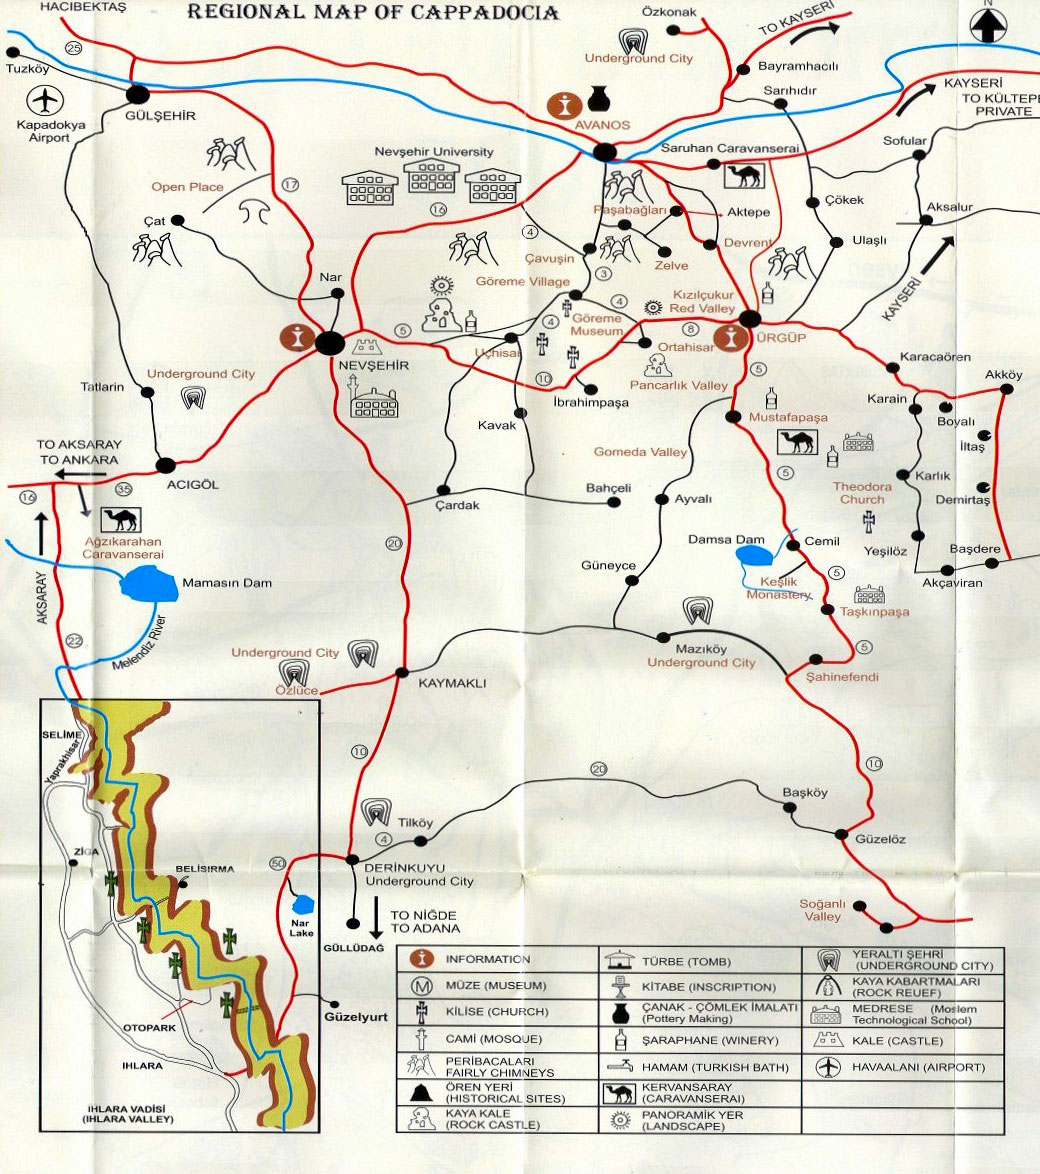 Cappadocia Turkey Map on